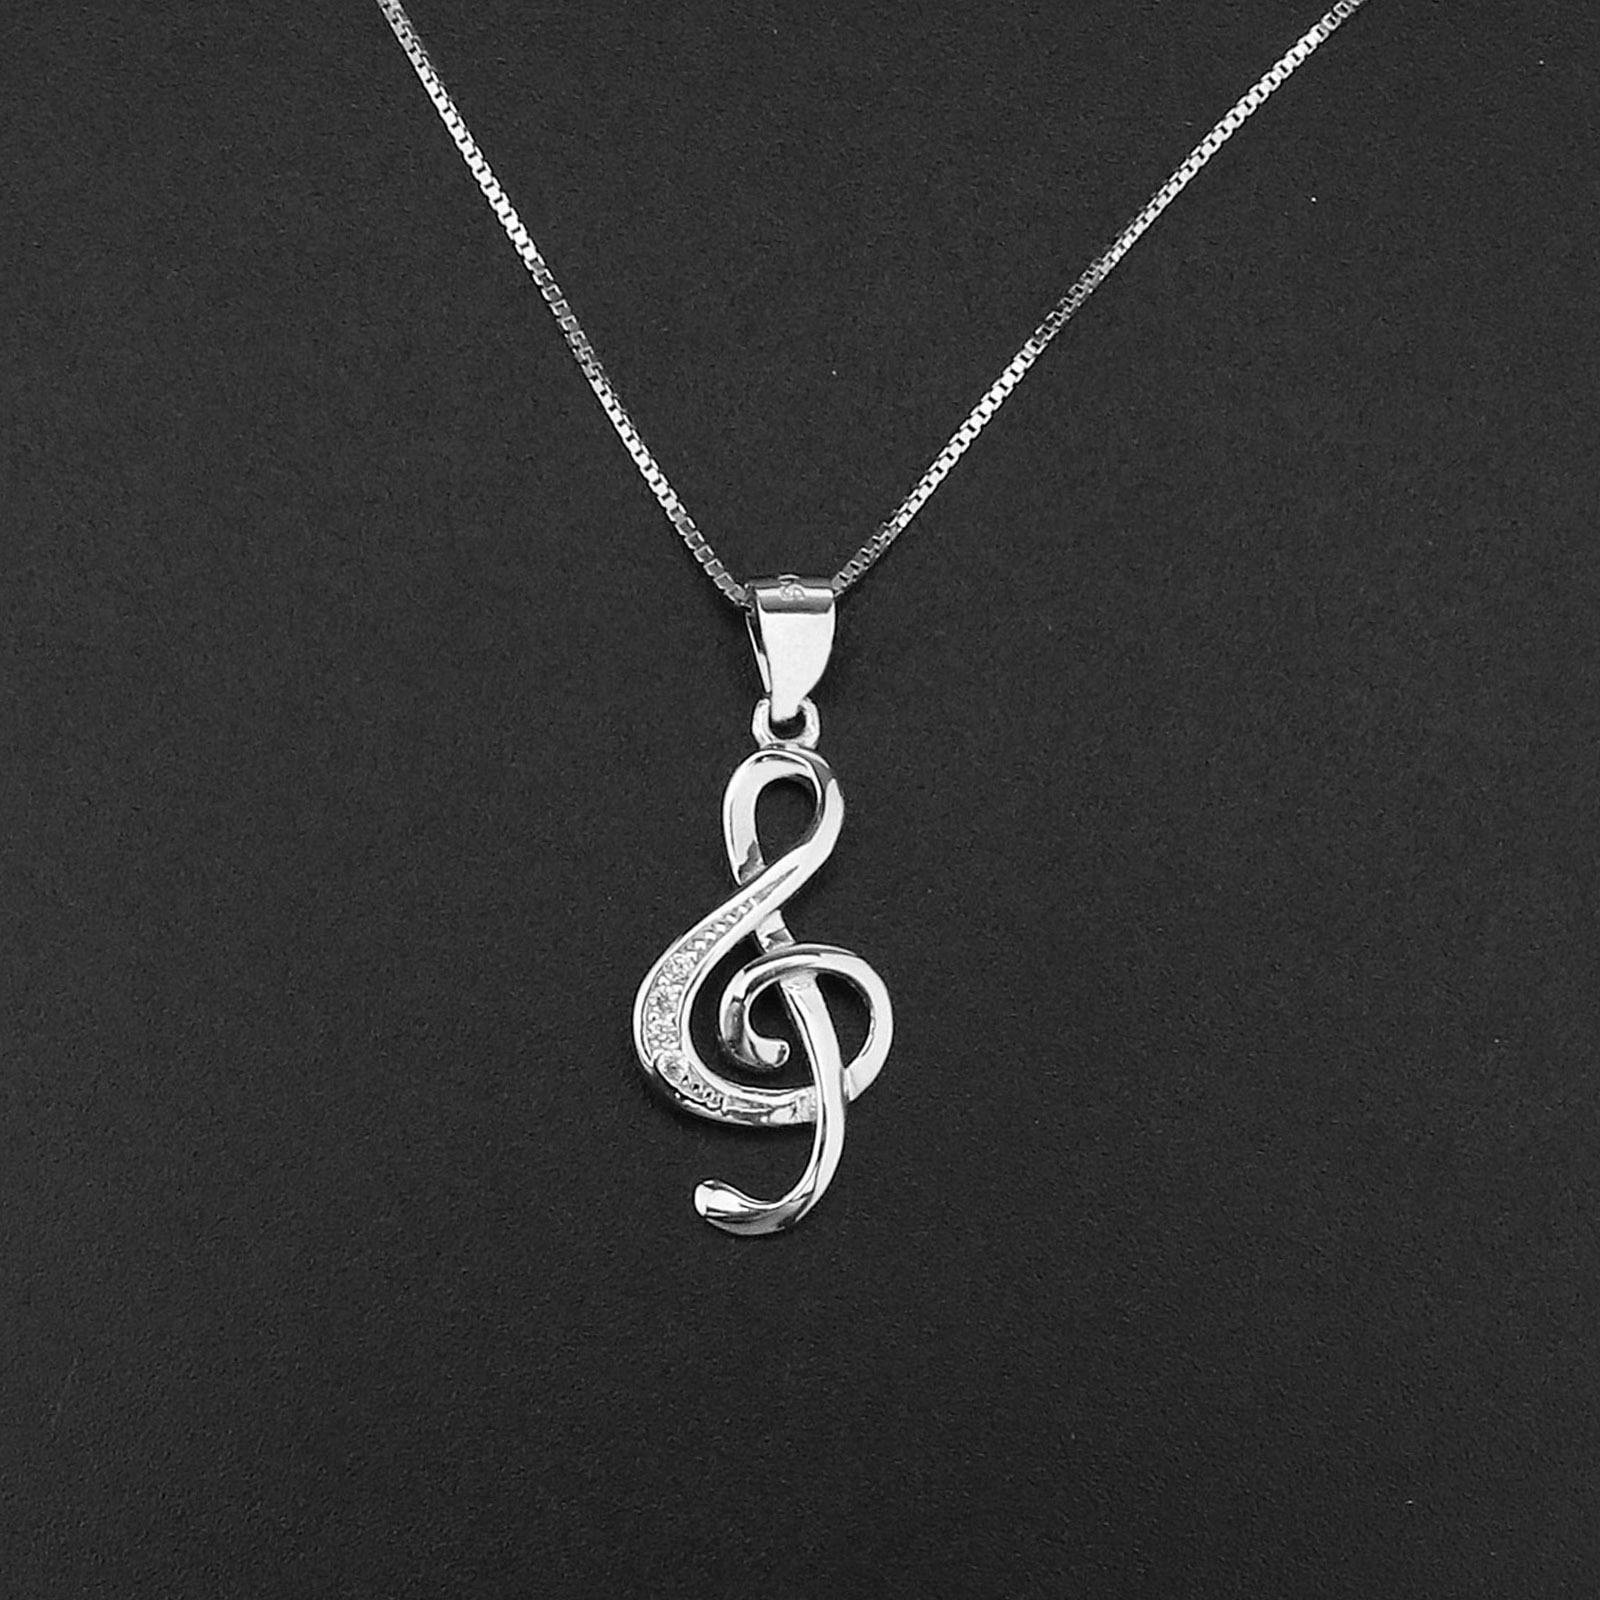 3efe939a7bc37c Image is loading 925-Sterling-Silver-Music-Note-CZ-Pendant-Necklace-